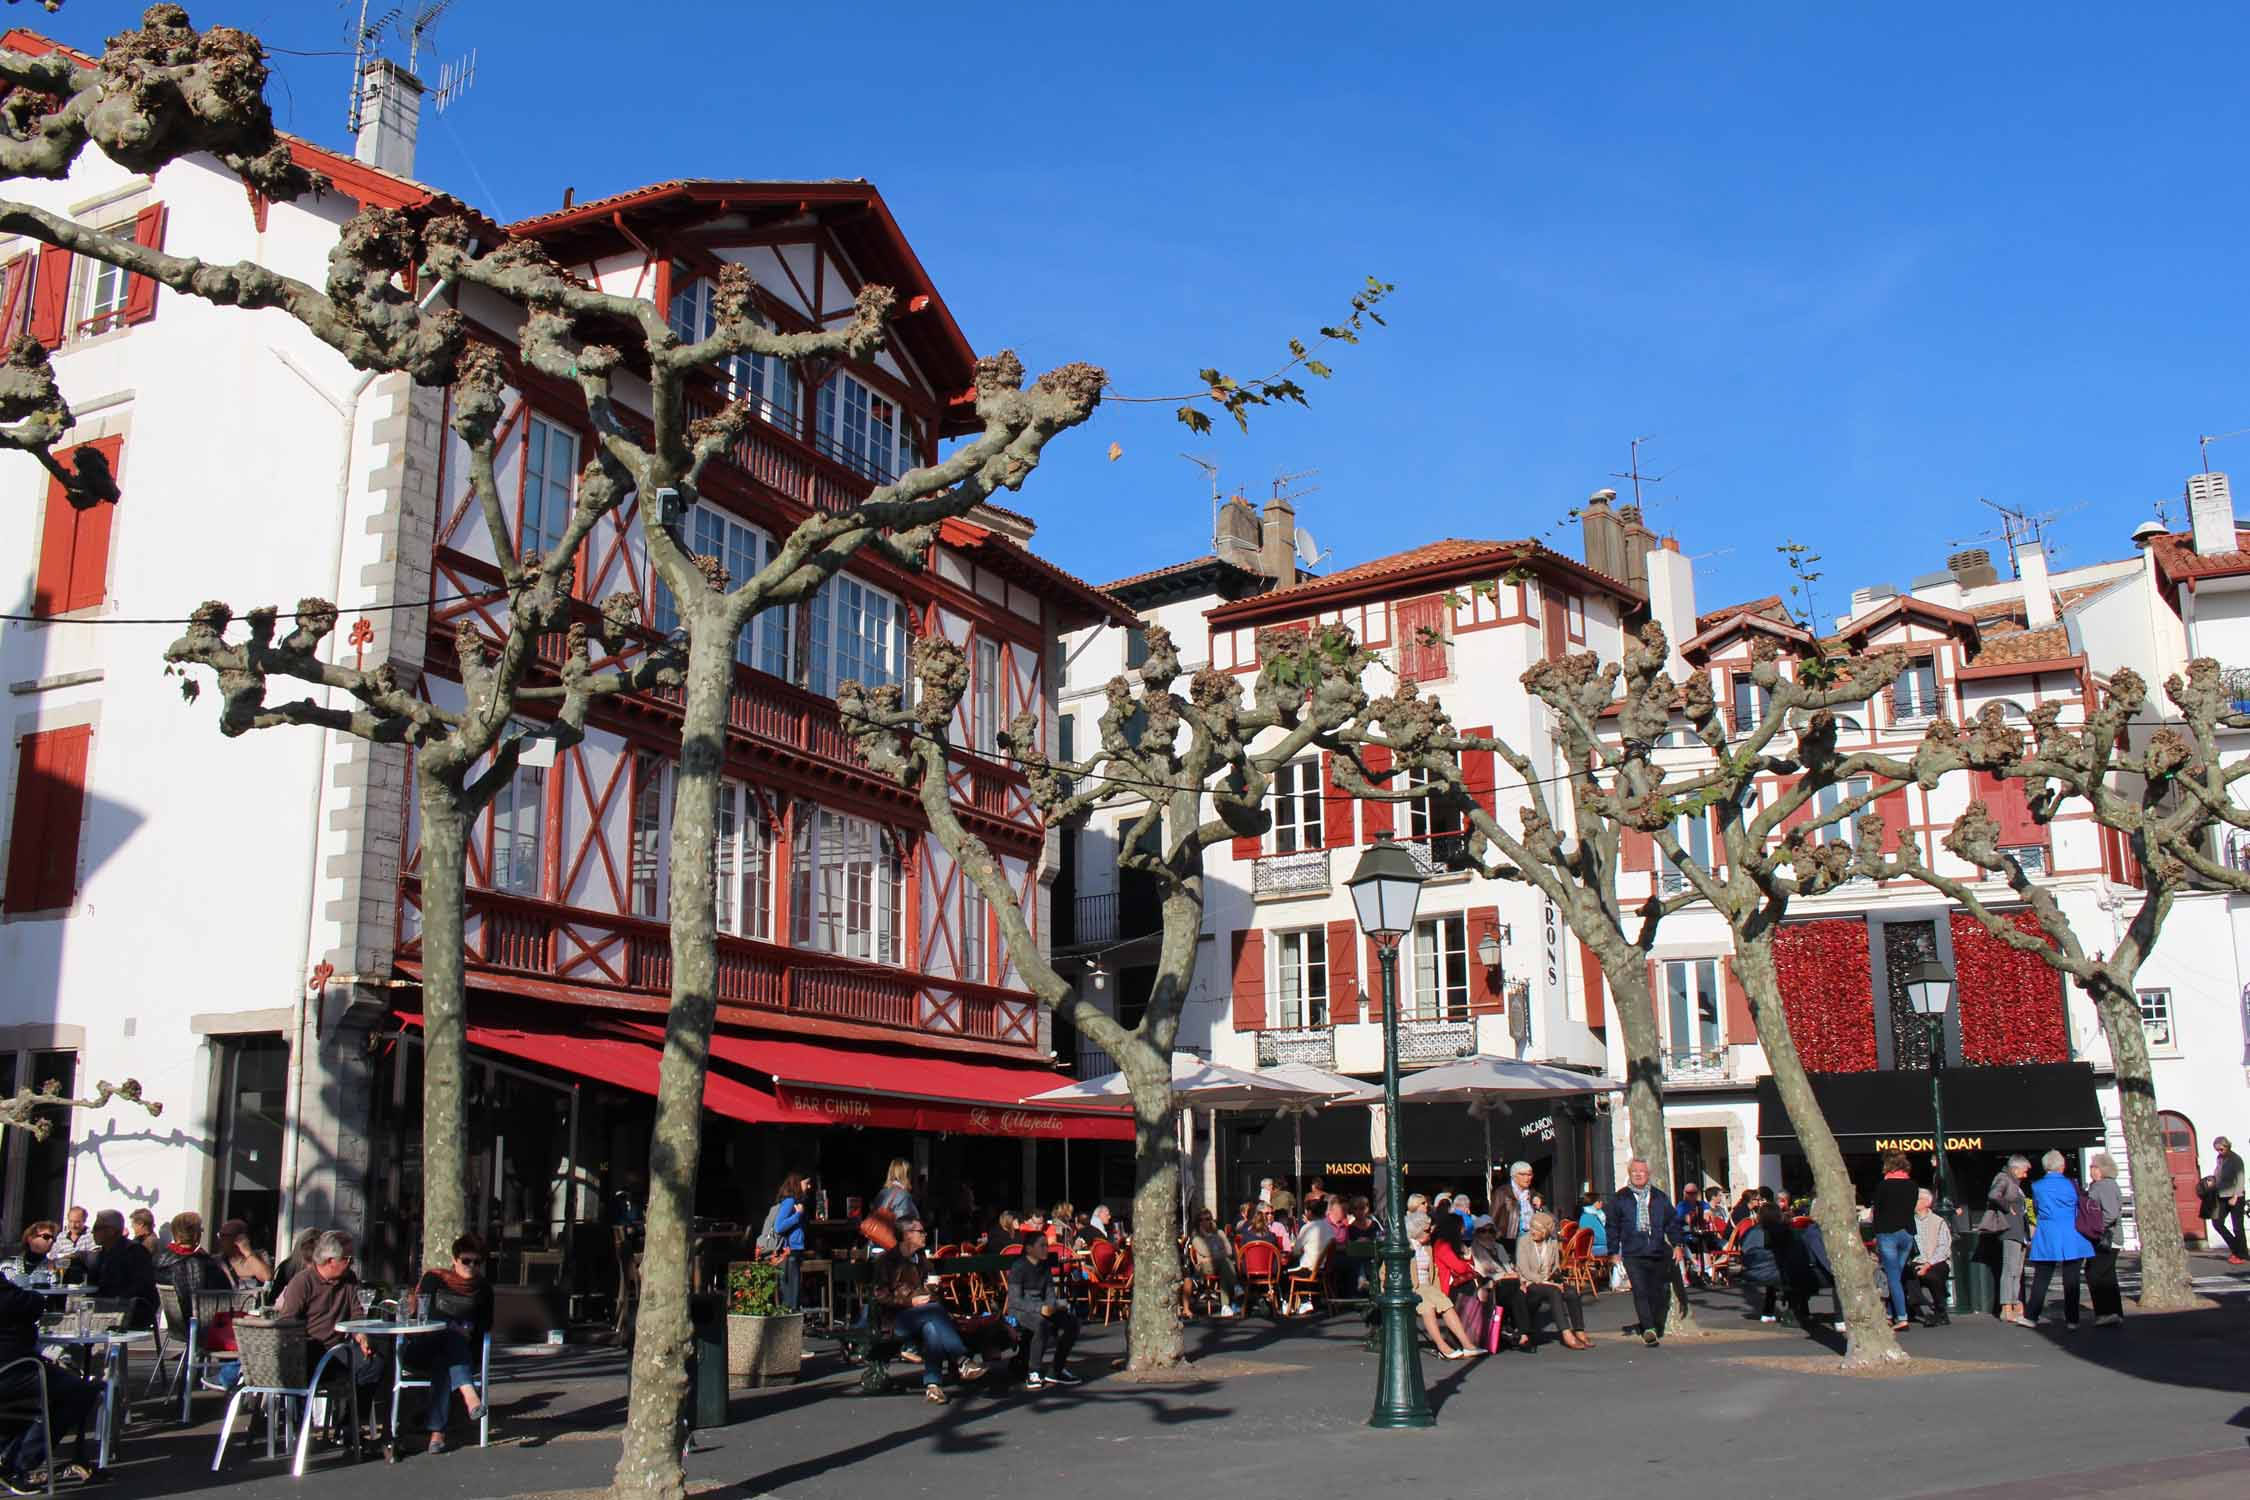 Saint-Jean-de-Luz, Louis XIV square, terrace